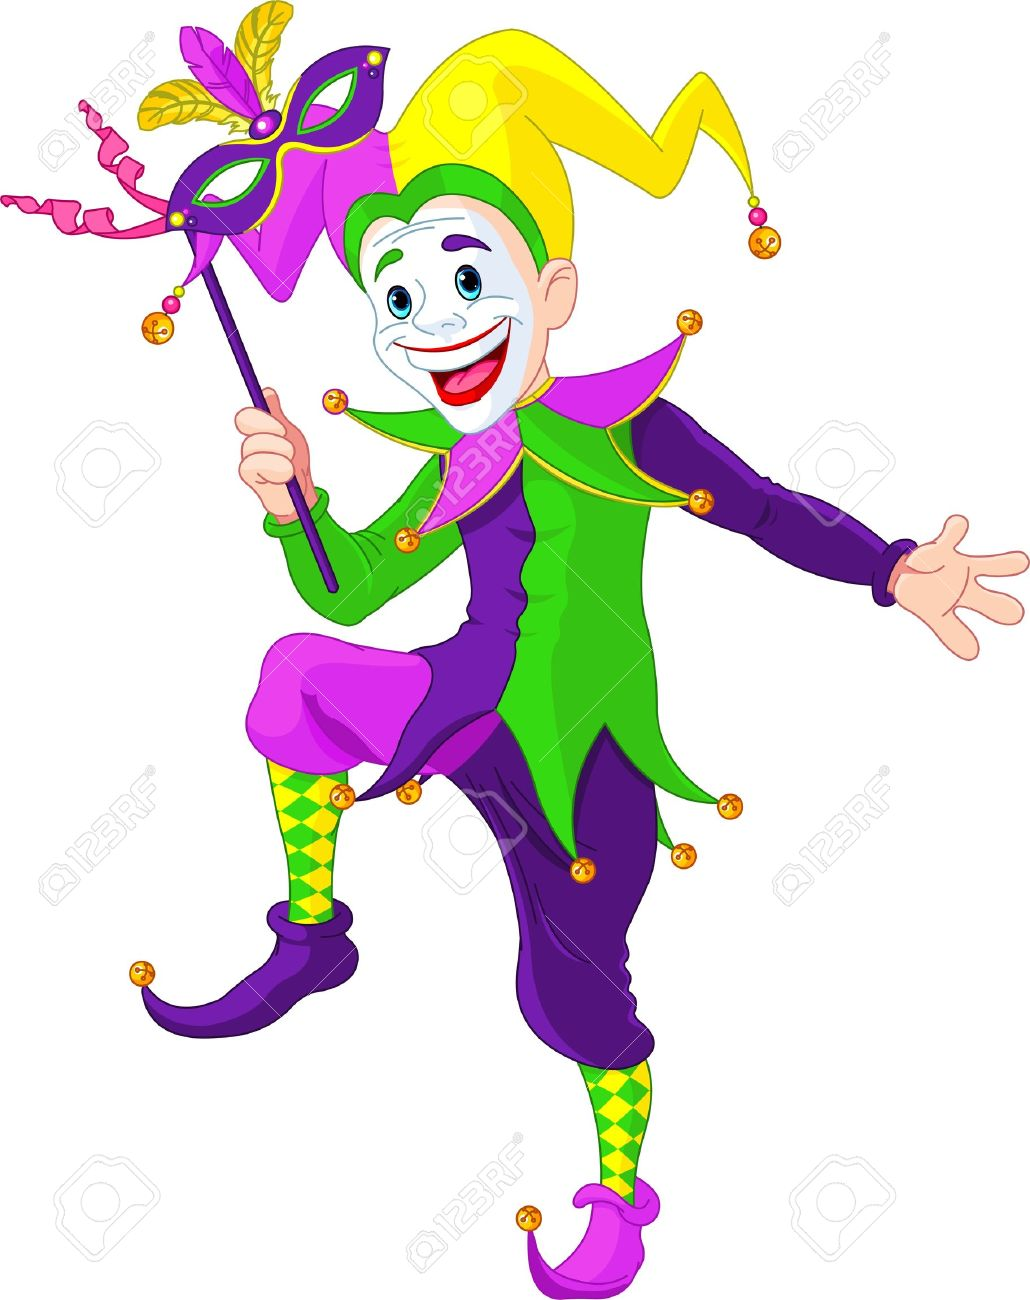 clip art illustration of a cartoon mardi gras jester holding rh 123rf com jester clipart free jester clipart black and white